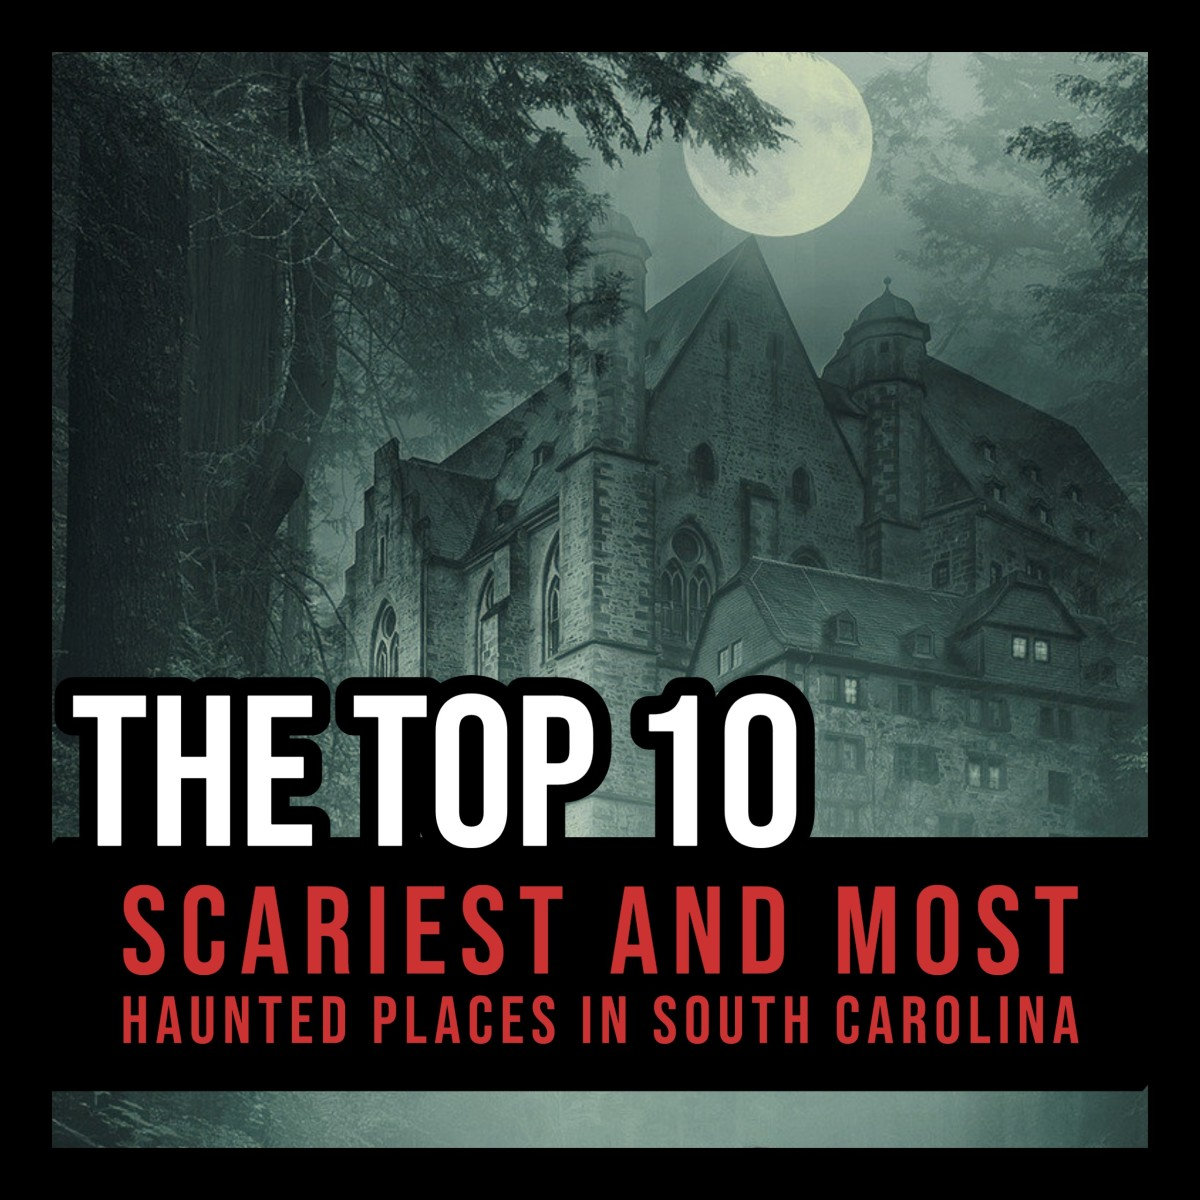 The Top 10 Scariest and Most Haunted Places in South Carolina